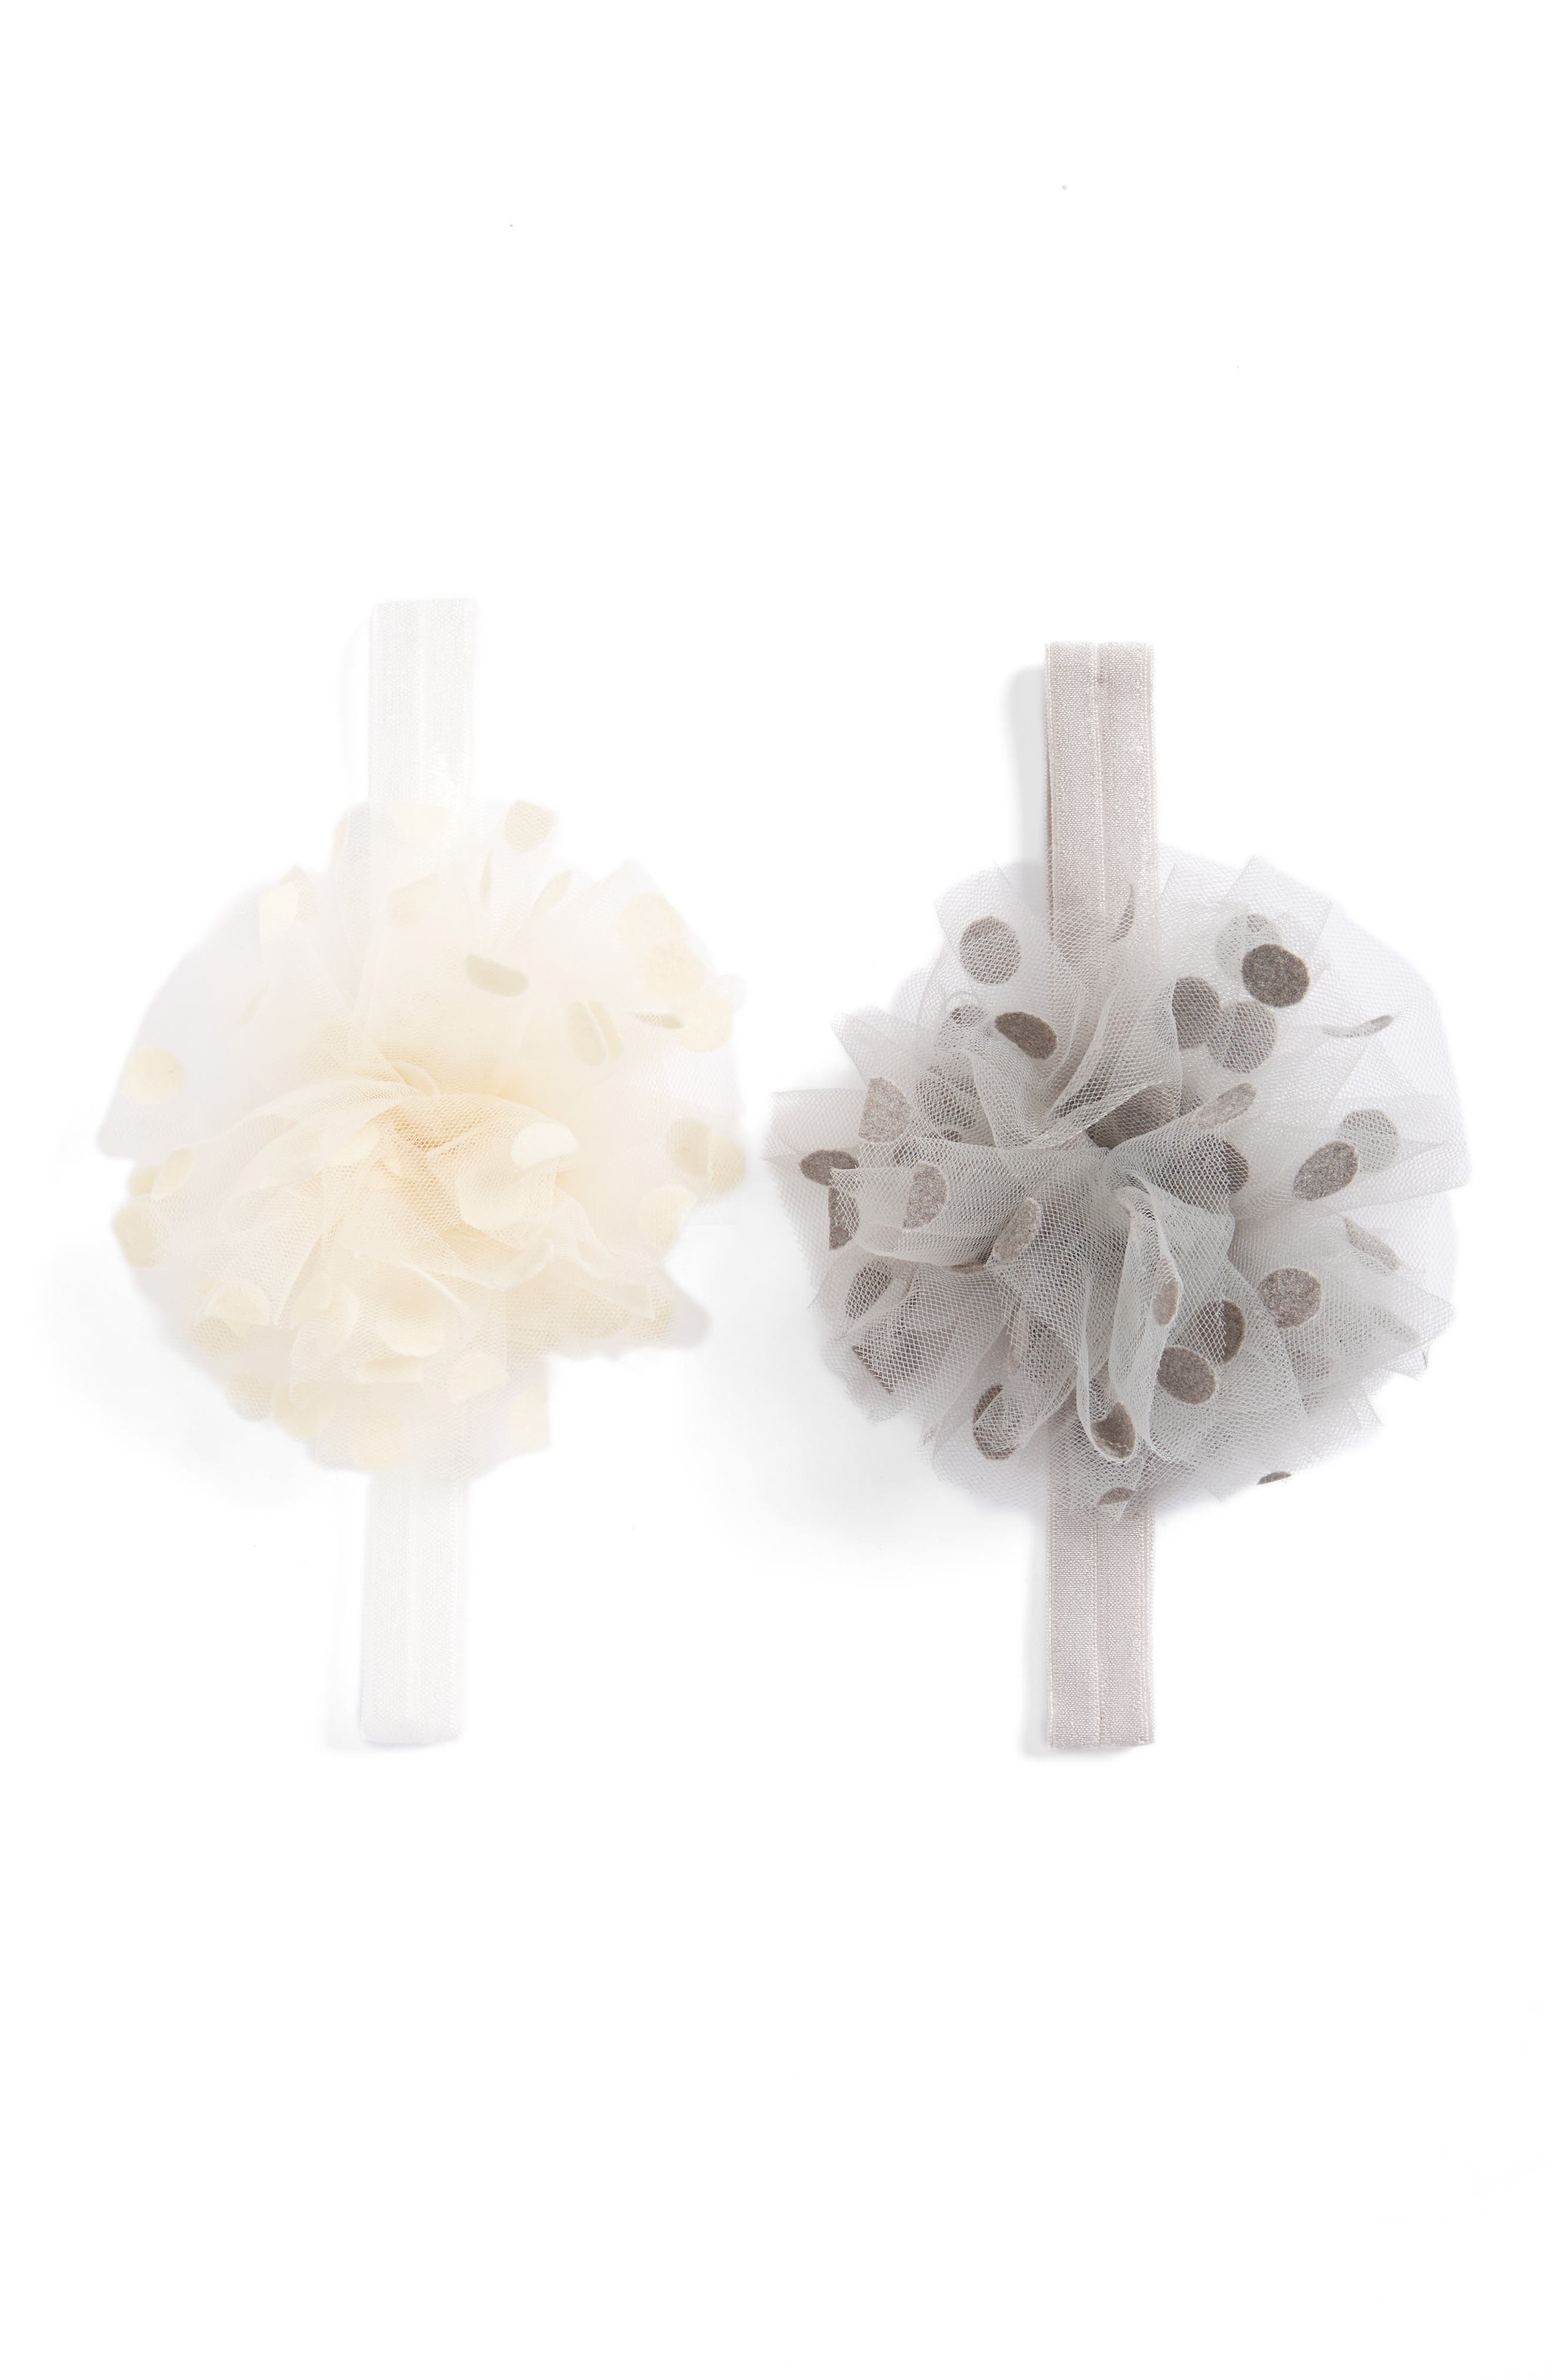 Tulle 2-Pack Headbands,                         Main,                         color, Antique White/Gray